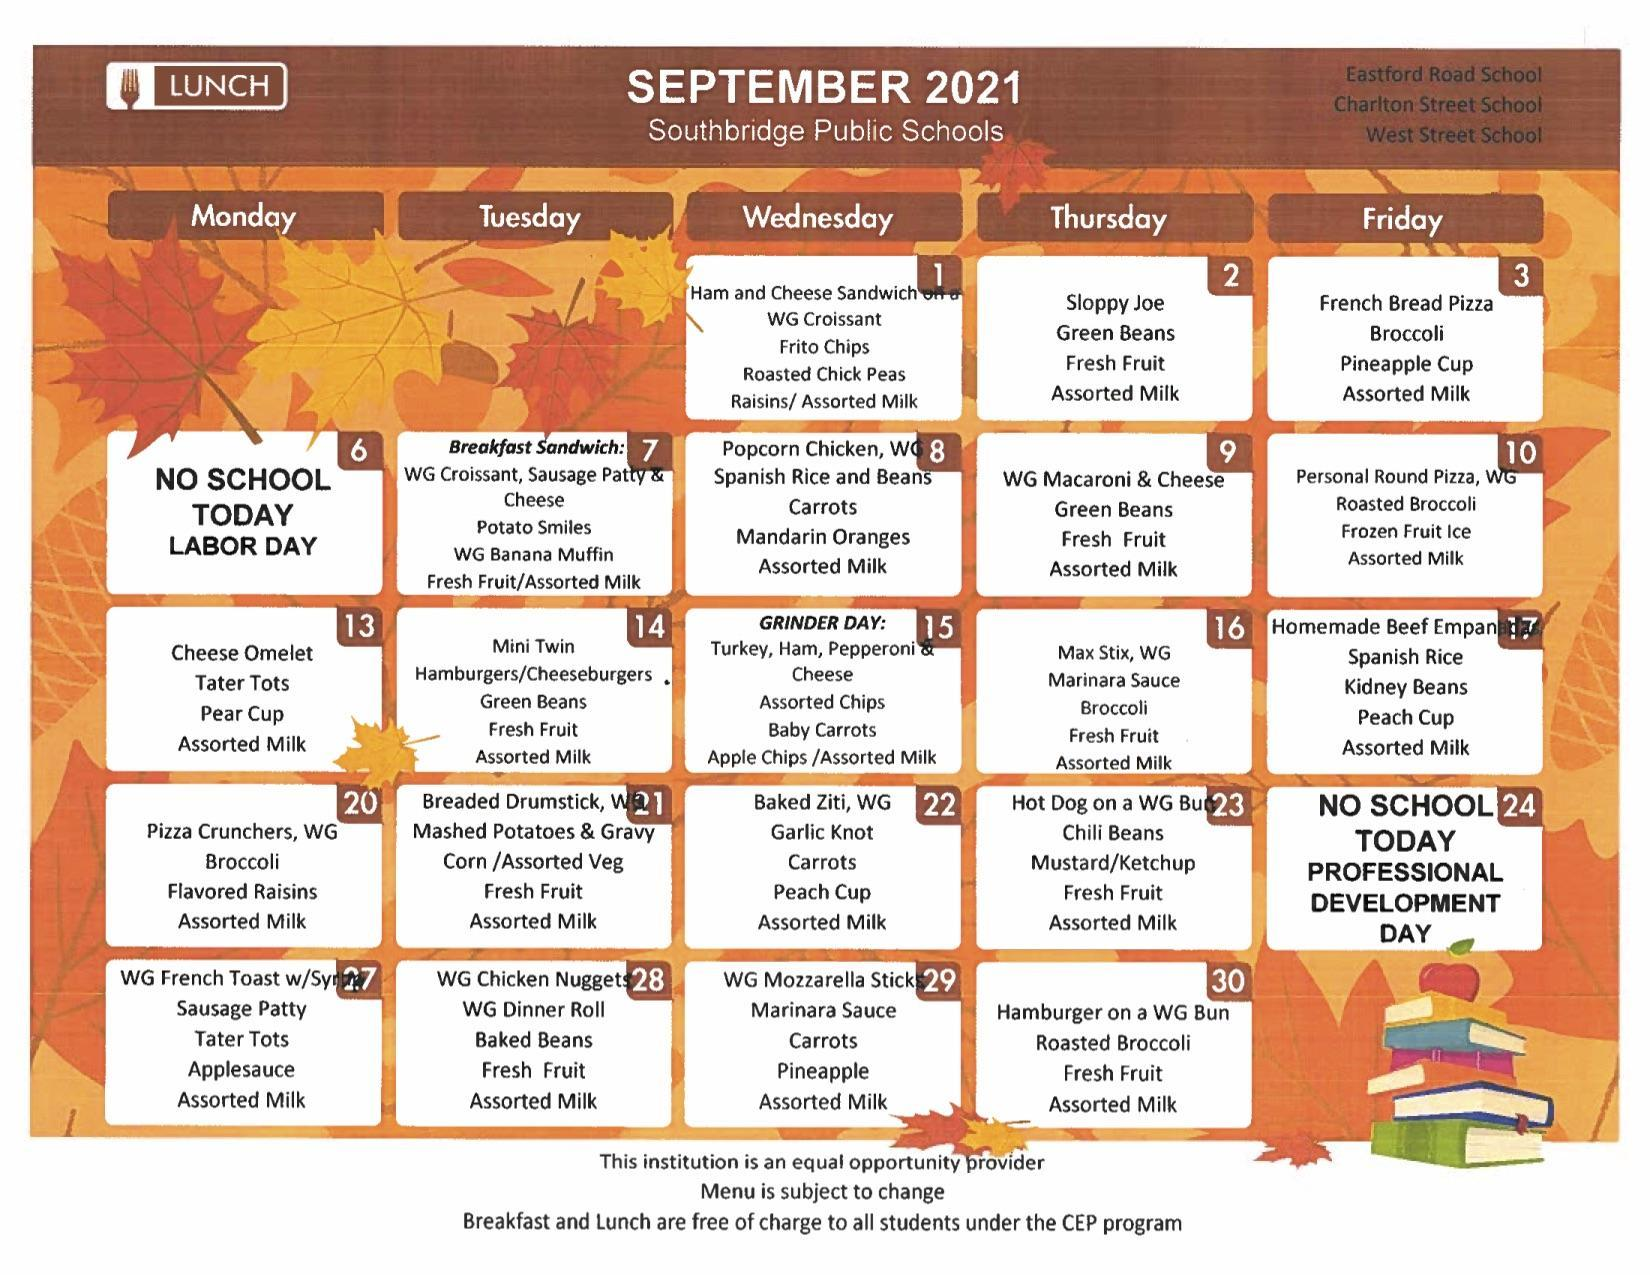 September 2021 menus for secondary schools. PDF version also available on this page.